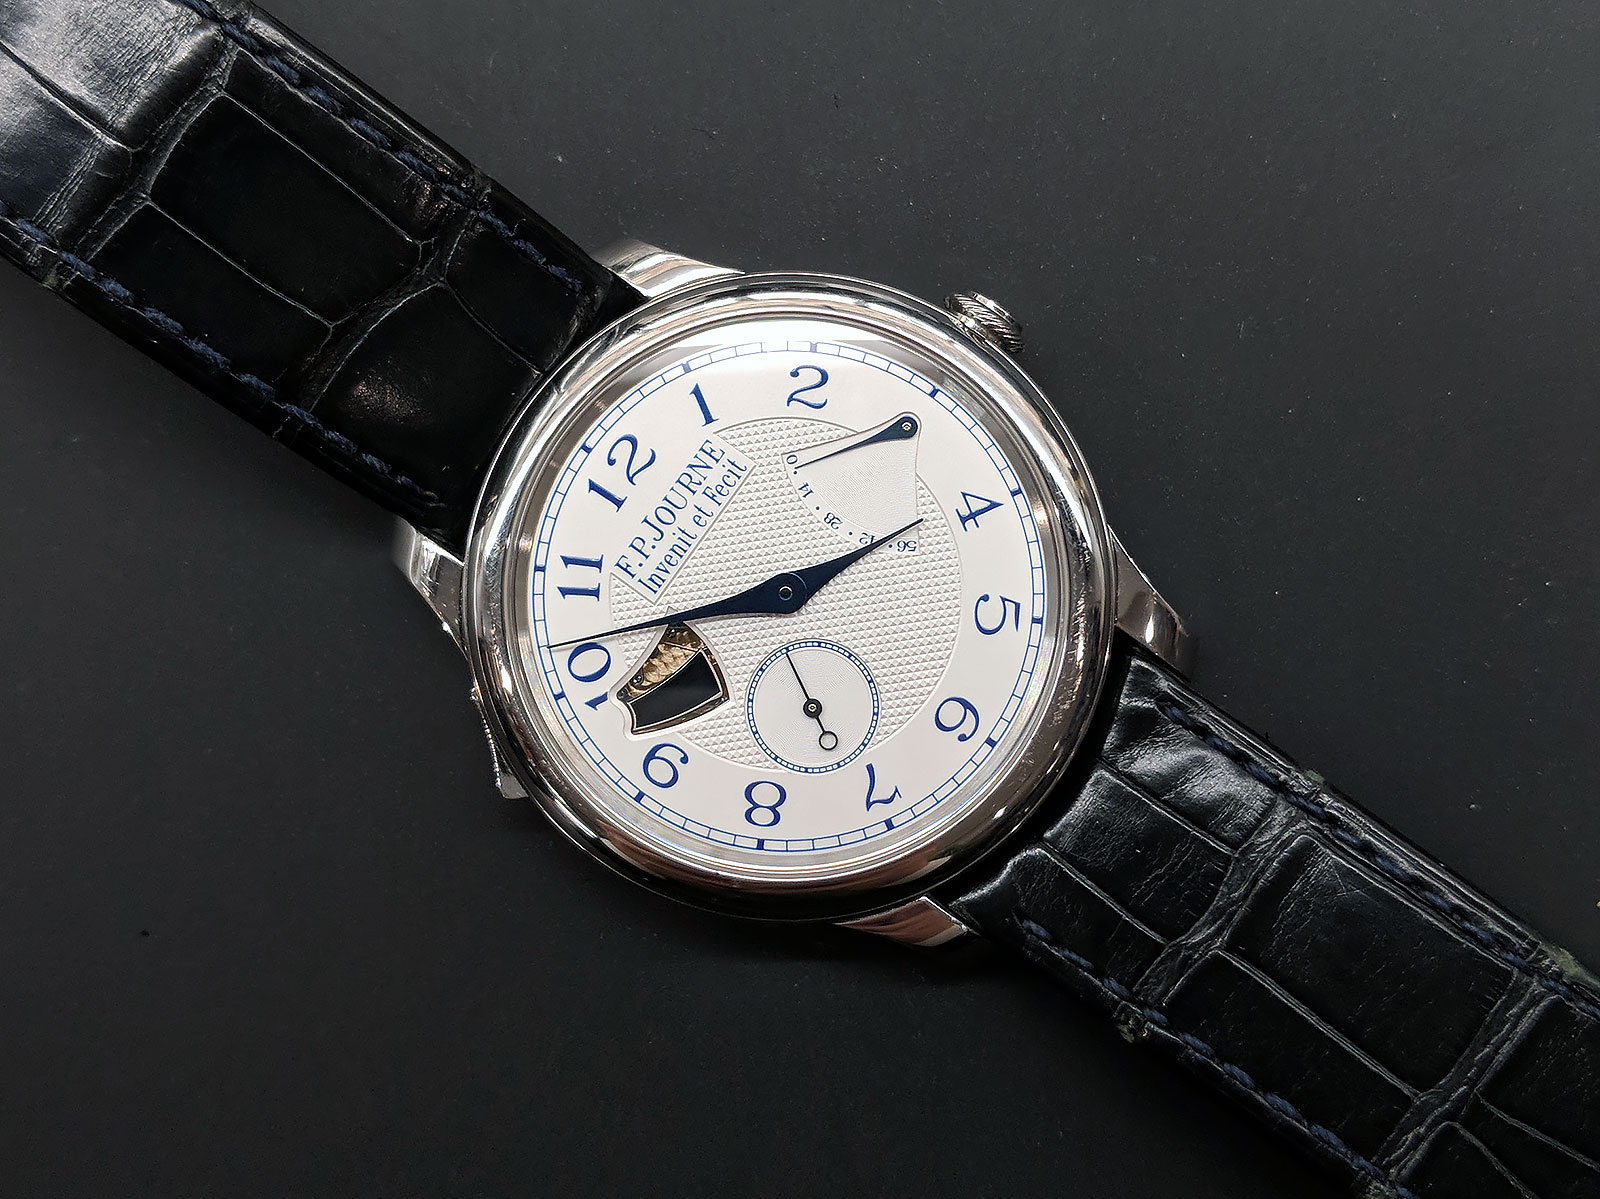 FP Journe Souverain Repeater JS Mark cho 1